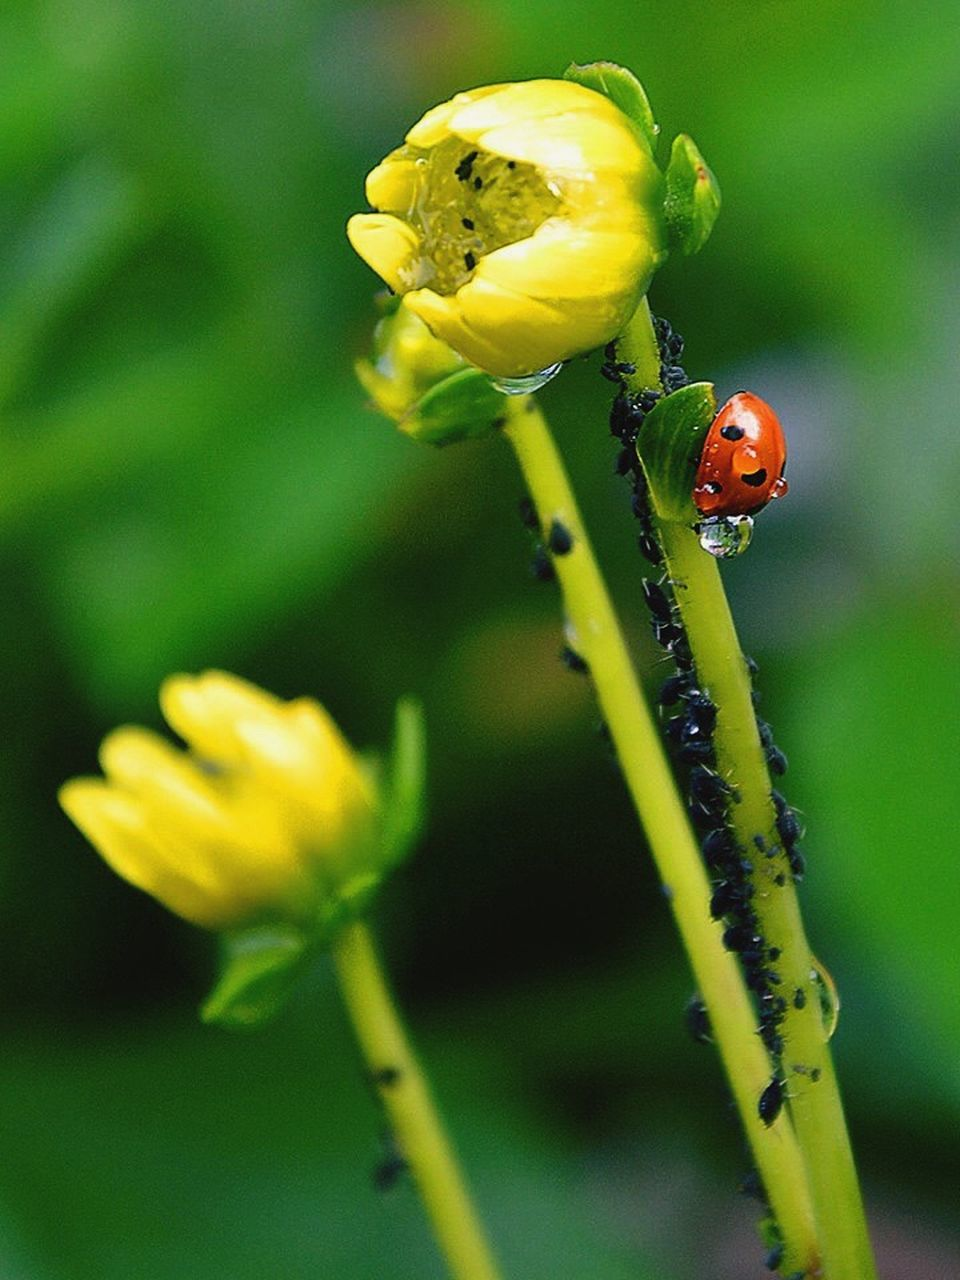 insect, yellow, flower, animals in the wild, nature, animal themes, plant, growth, ladybug, one animal, stem, green color, fragility, outdoors, beauty in nature, close-up, focus on foreground, no people, day, animal wildlife, leaf, tiny, freshness, flower head